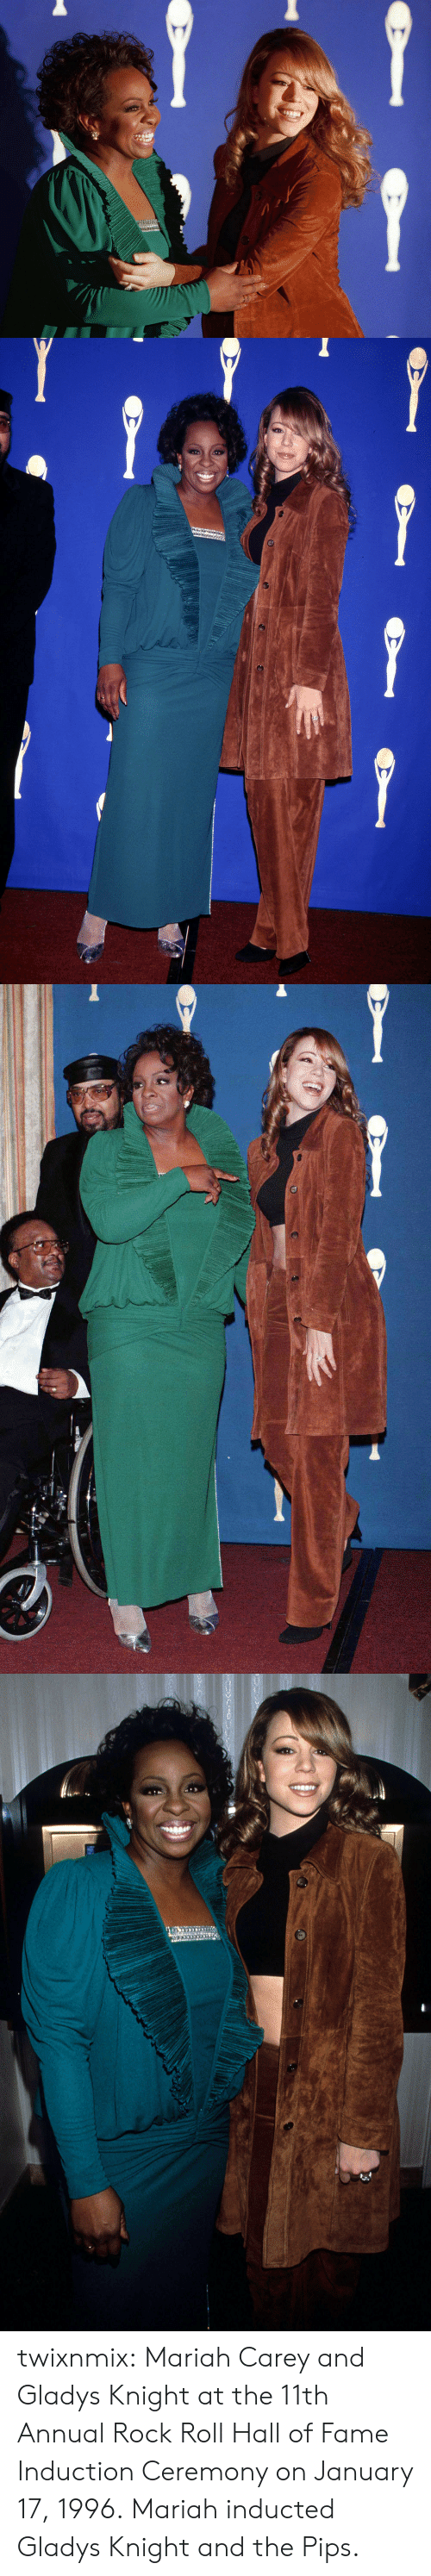 induction: twixnmix:  Mariah Carey and Gladys Knight at the 11th Annual Rock  Roll Hall of Fame Induction Ceremony on January 17, 1996.  Mariah inducted Gladys Knight and the Pips.